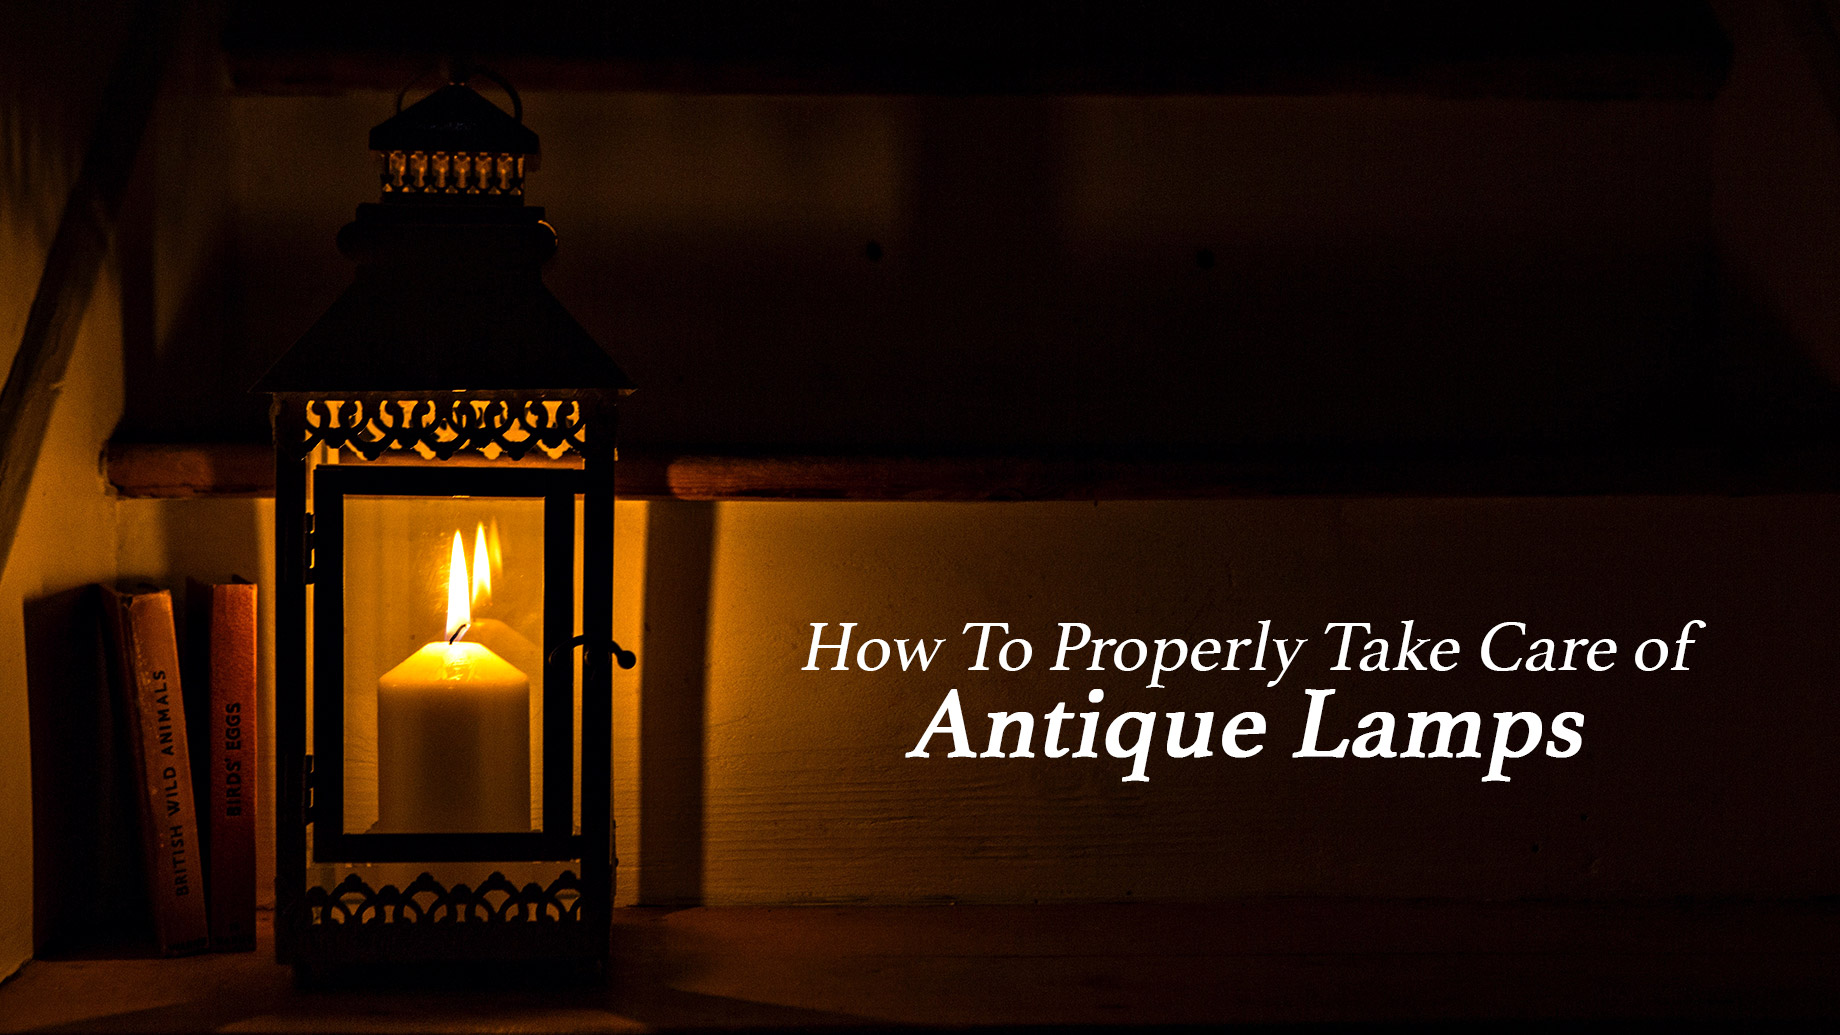 How To Properly Take Care of Antique Lamps